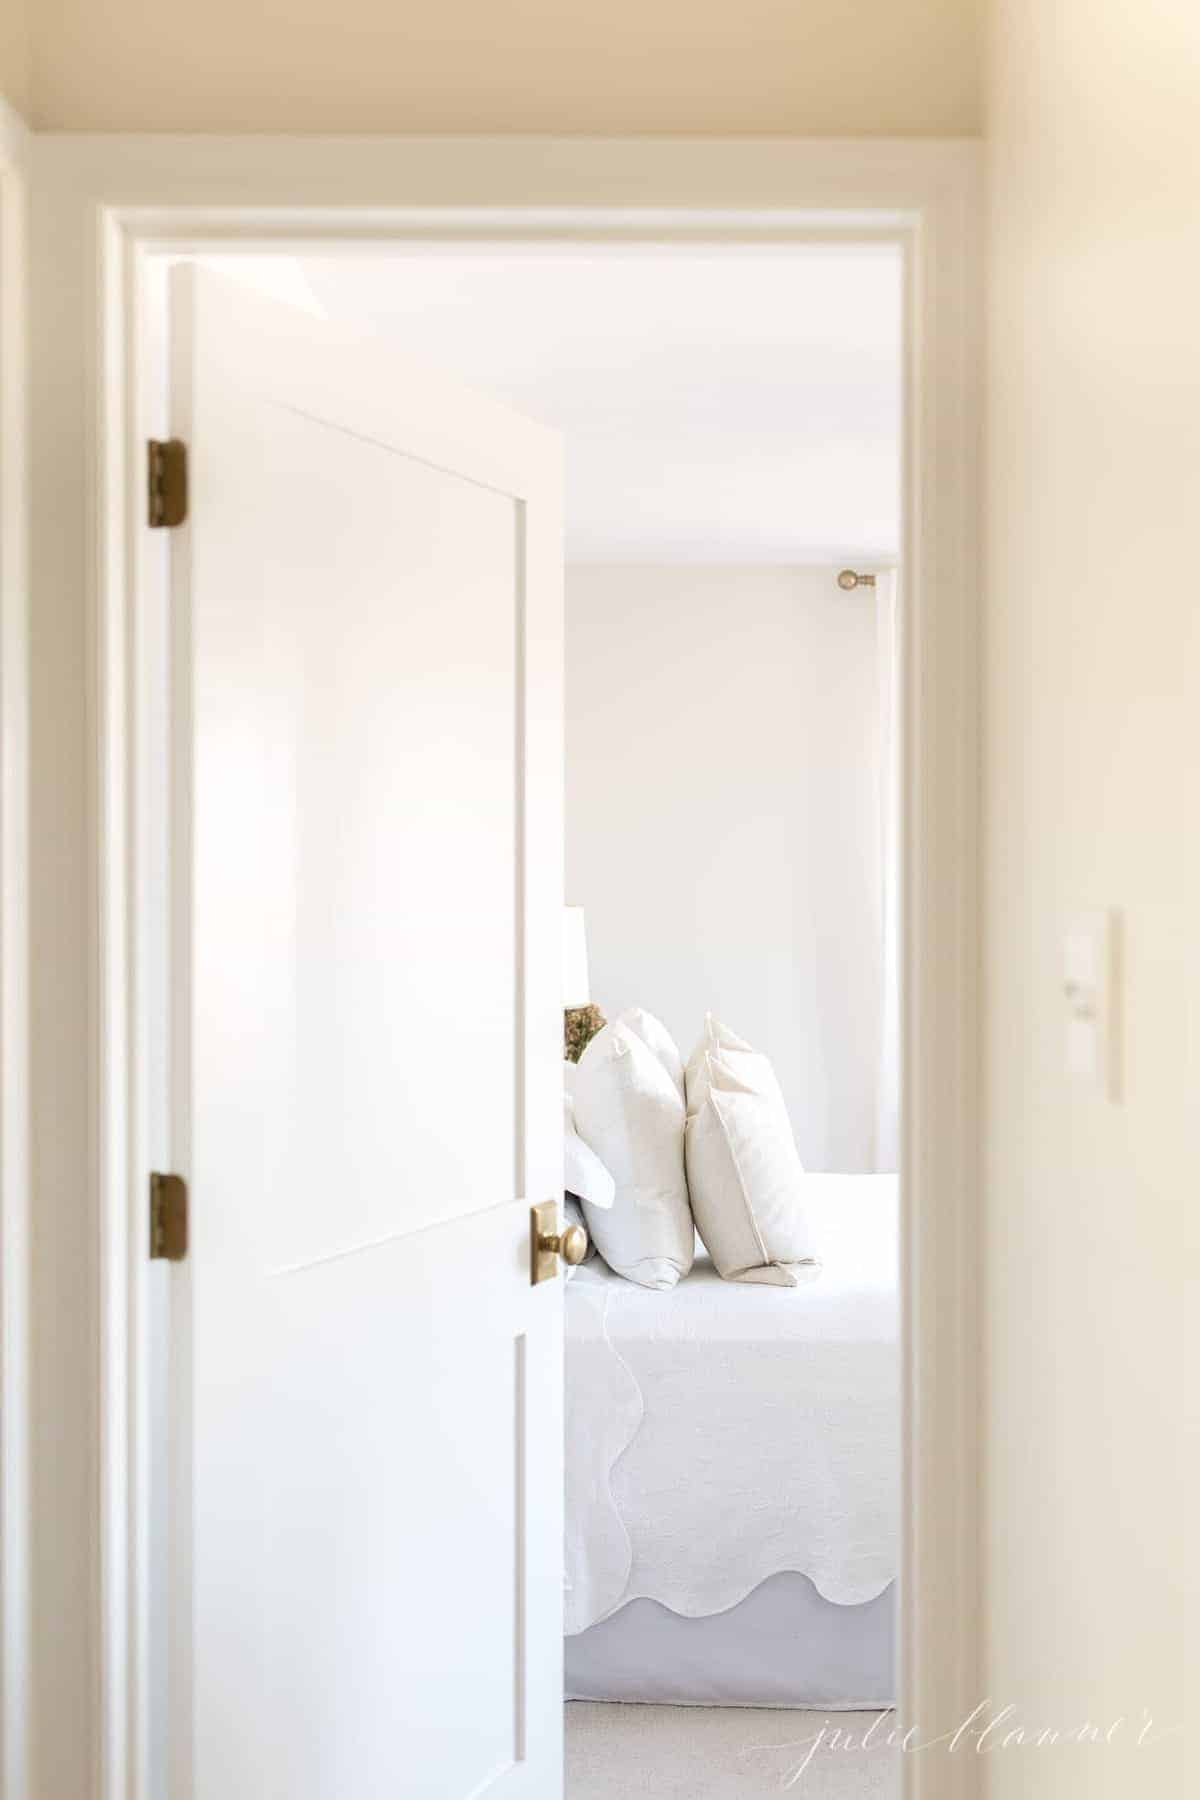 A white Shaker interior door with a brass doorknob, opening into a bedroom.